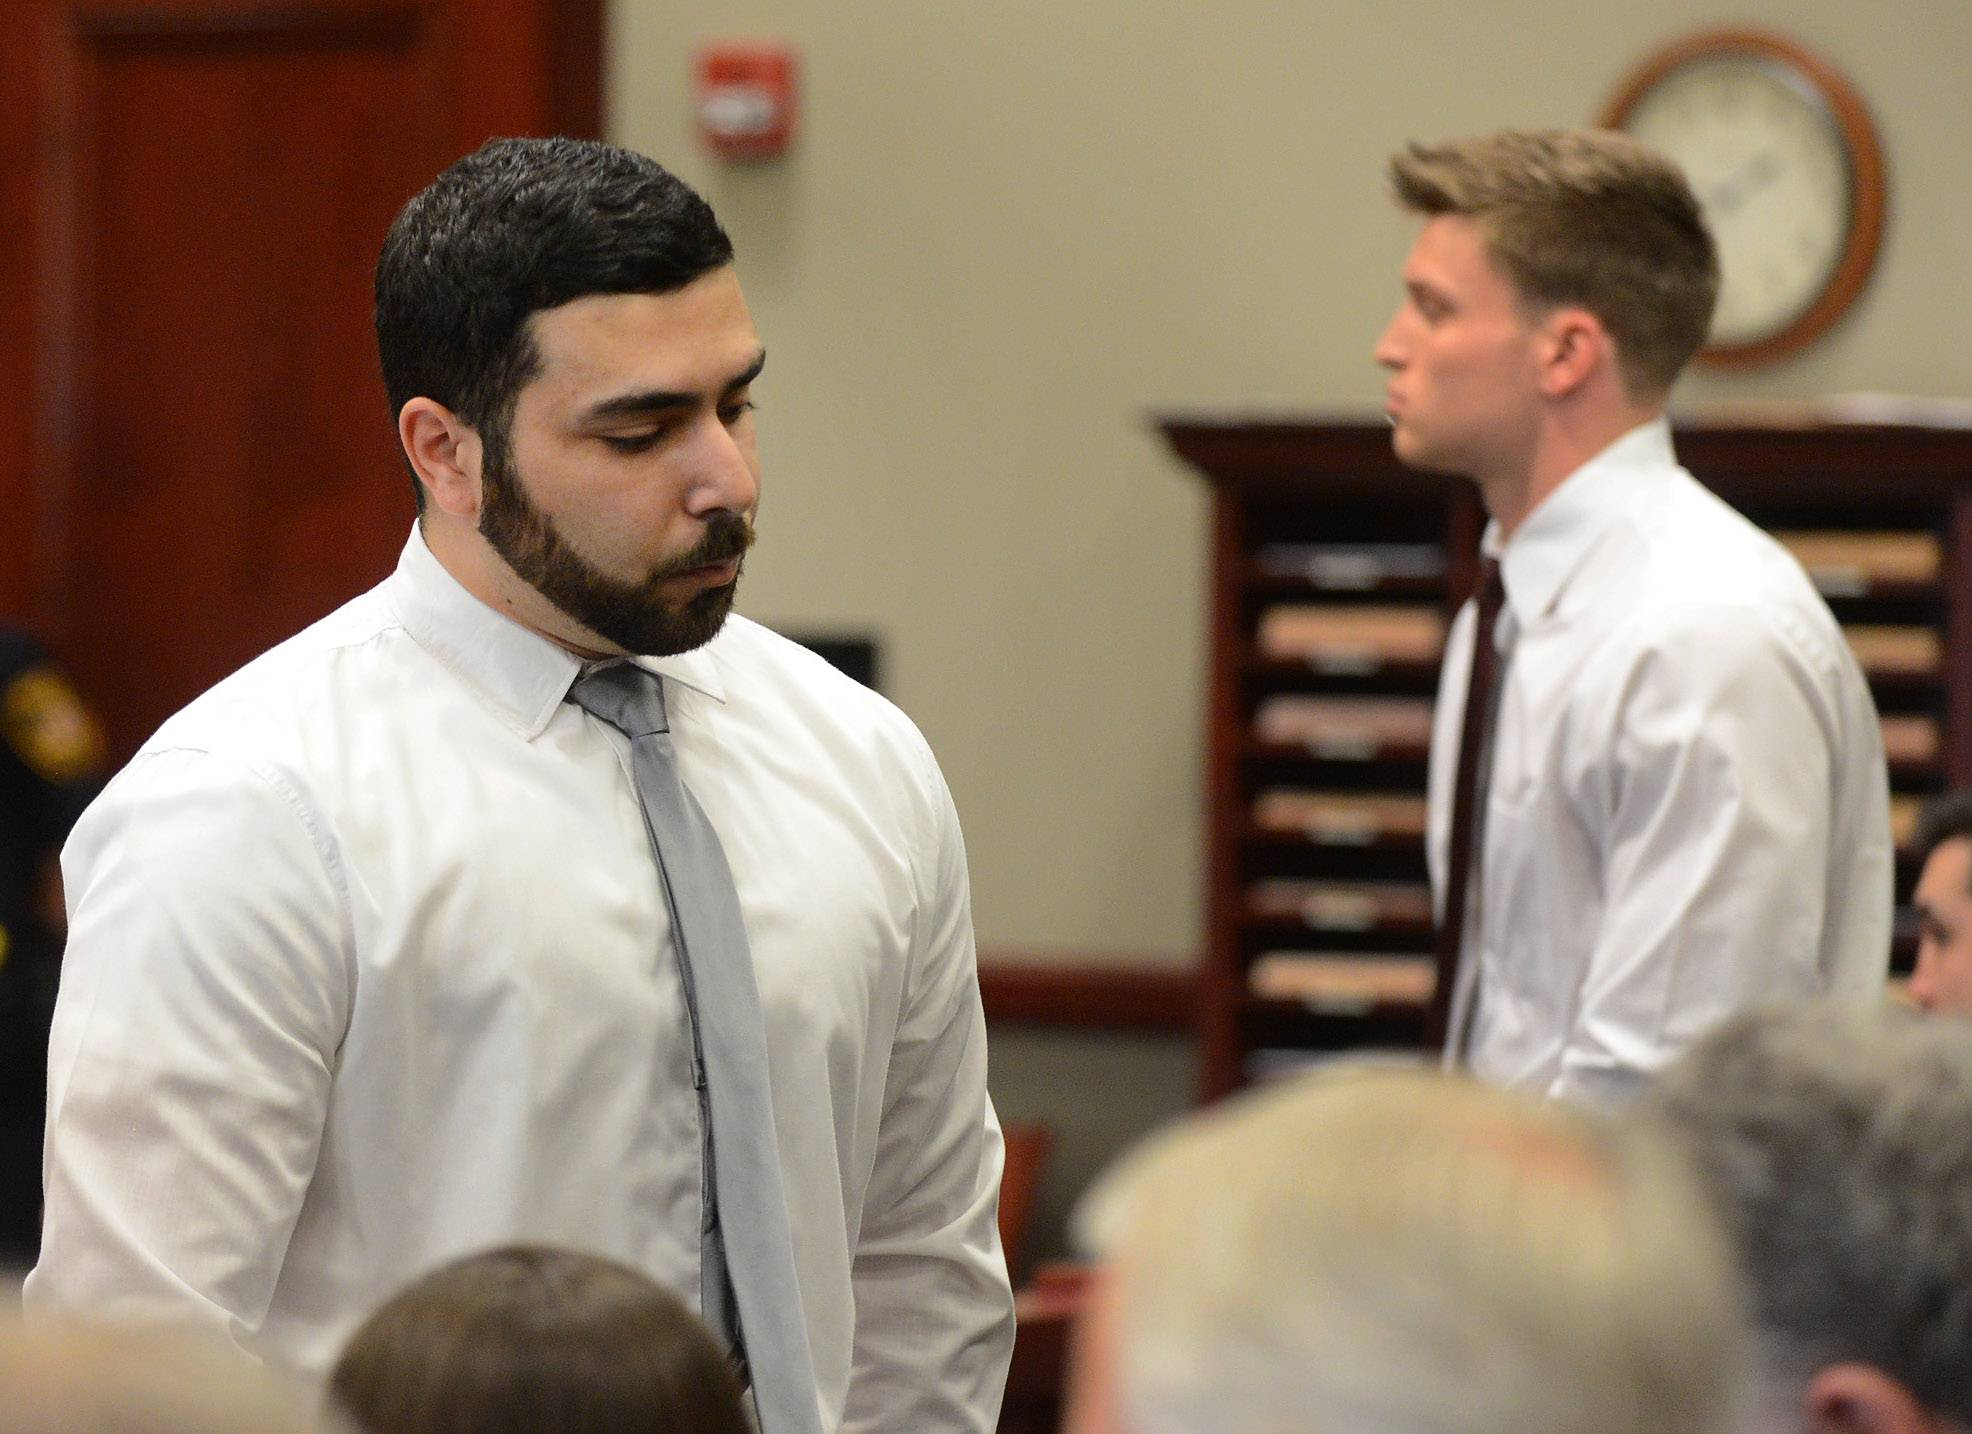 Omar Salameh, of DeKalb, left, and Steven A. Libert, of Naperville, background, pleaded guilty to a reckless conduct misdemeanor charge in the hazing death of Northern Illinois University freshman David Bogenberger of Palatine Friday at the DeKalb County Courthouse in Sycamore.